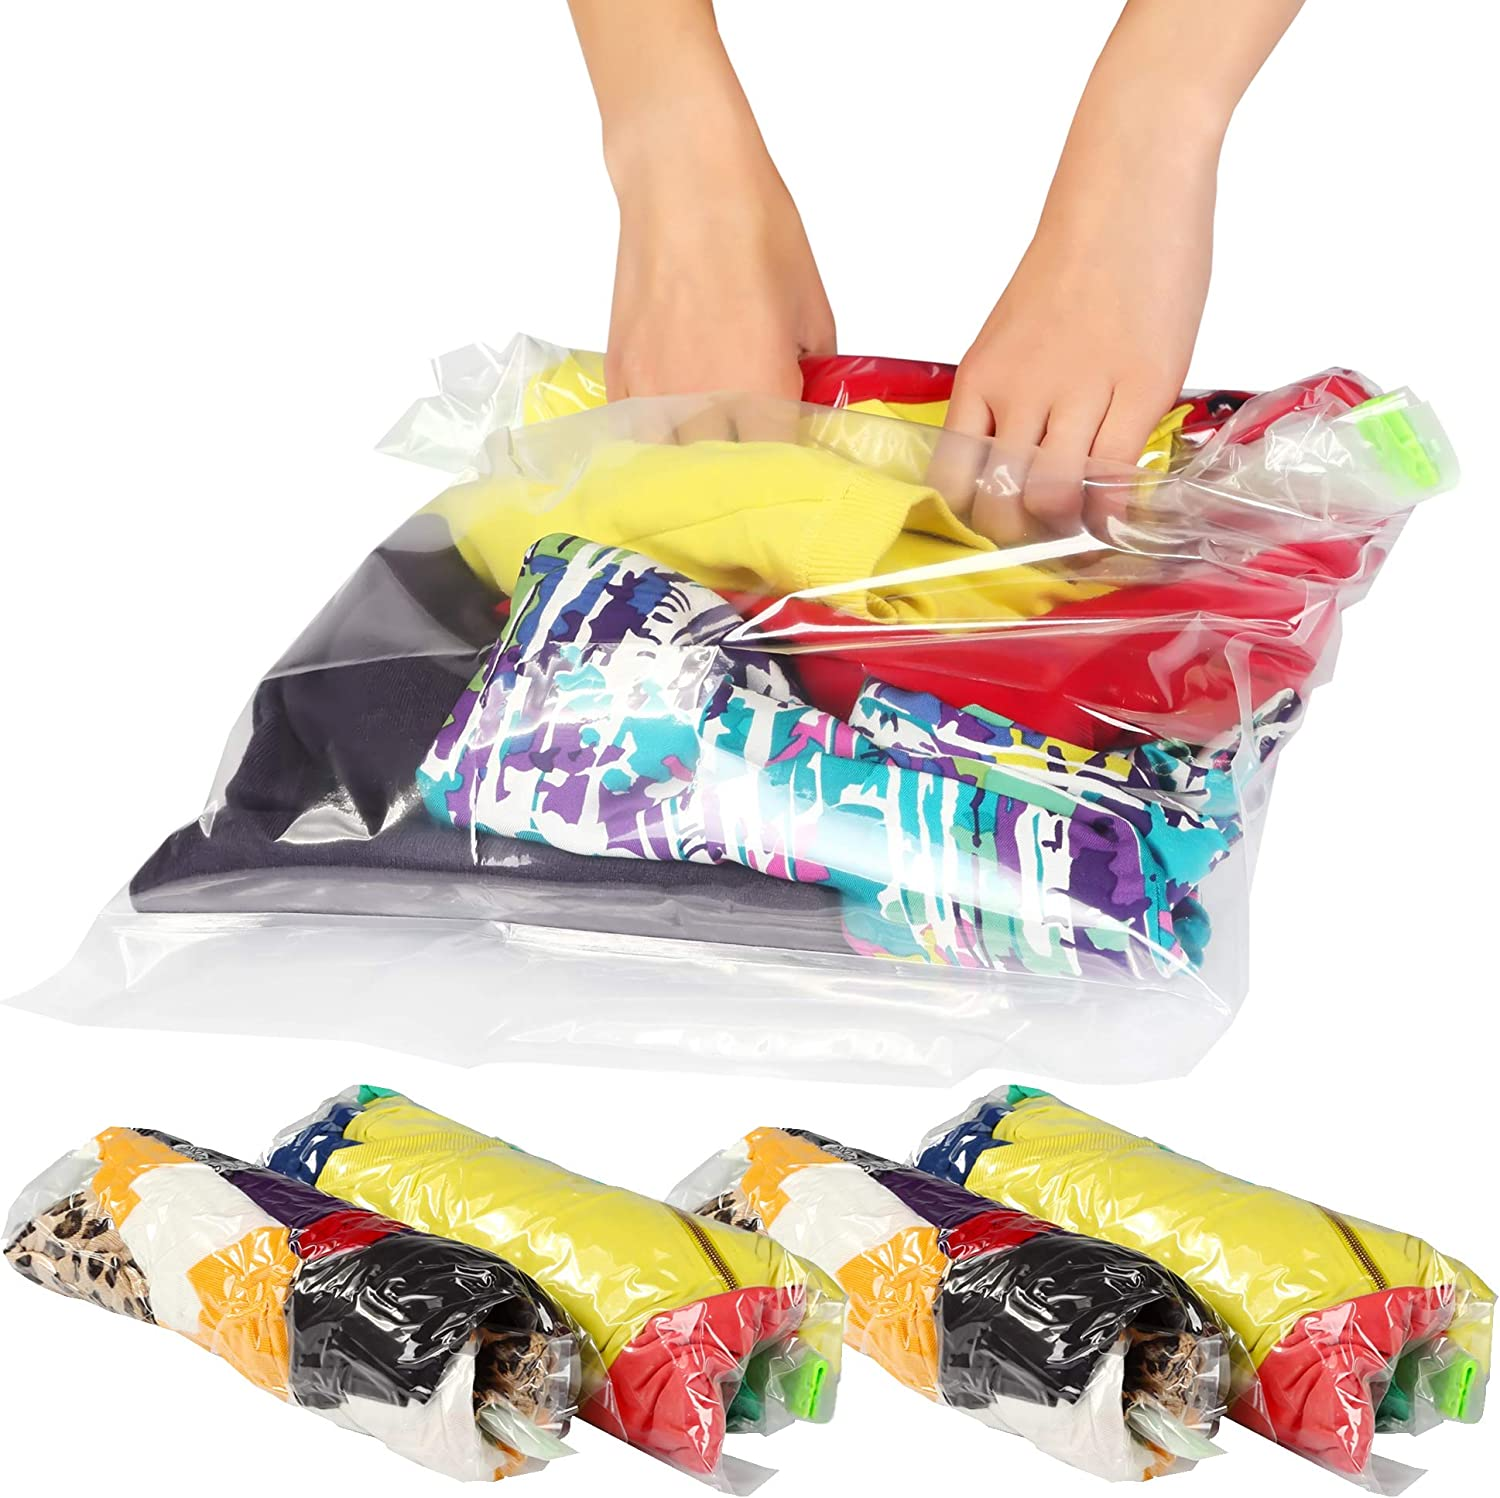 12 Medium & Large Ziplock Storage Bags for Clothes - Travel Accessories - Space Saver Vacuum Bags - Travel Roll-Up Bags for Packing – Packing Waterproof Compression Bags for Travel No Vacuum Needed